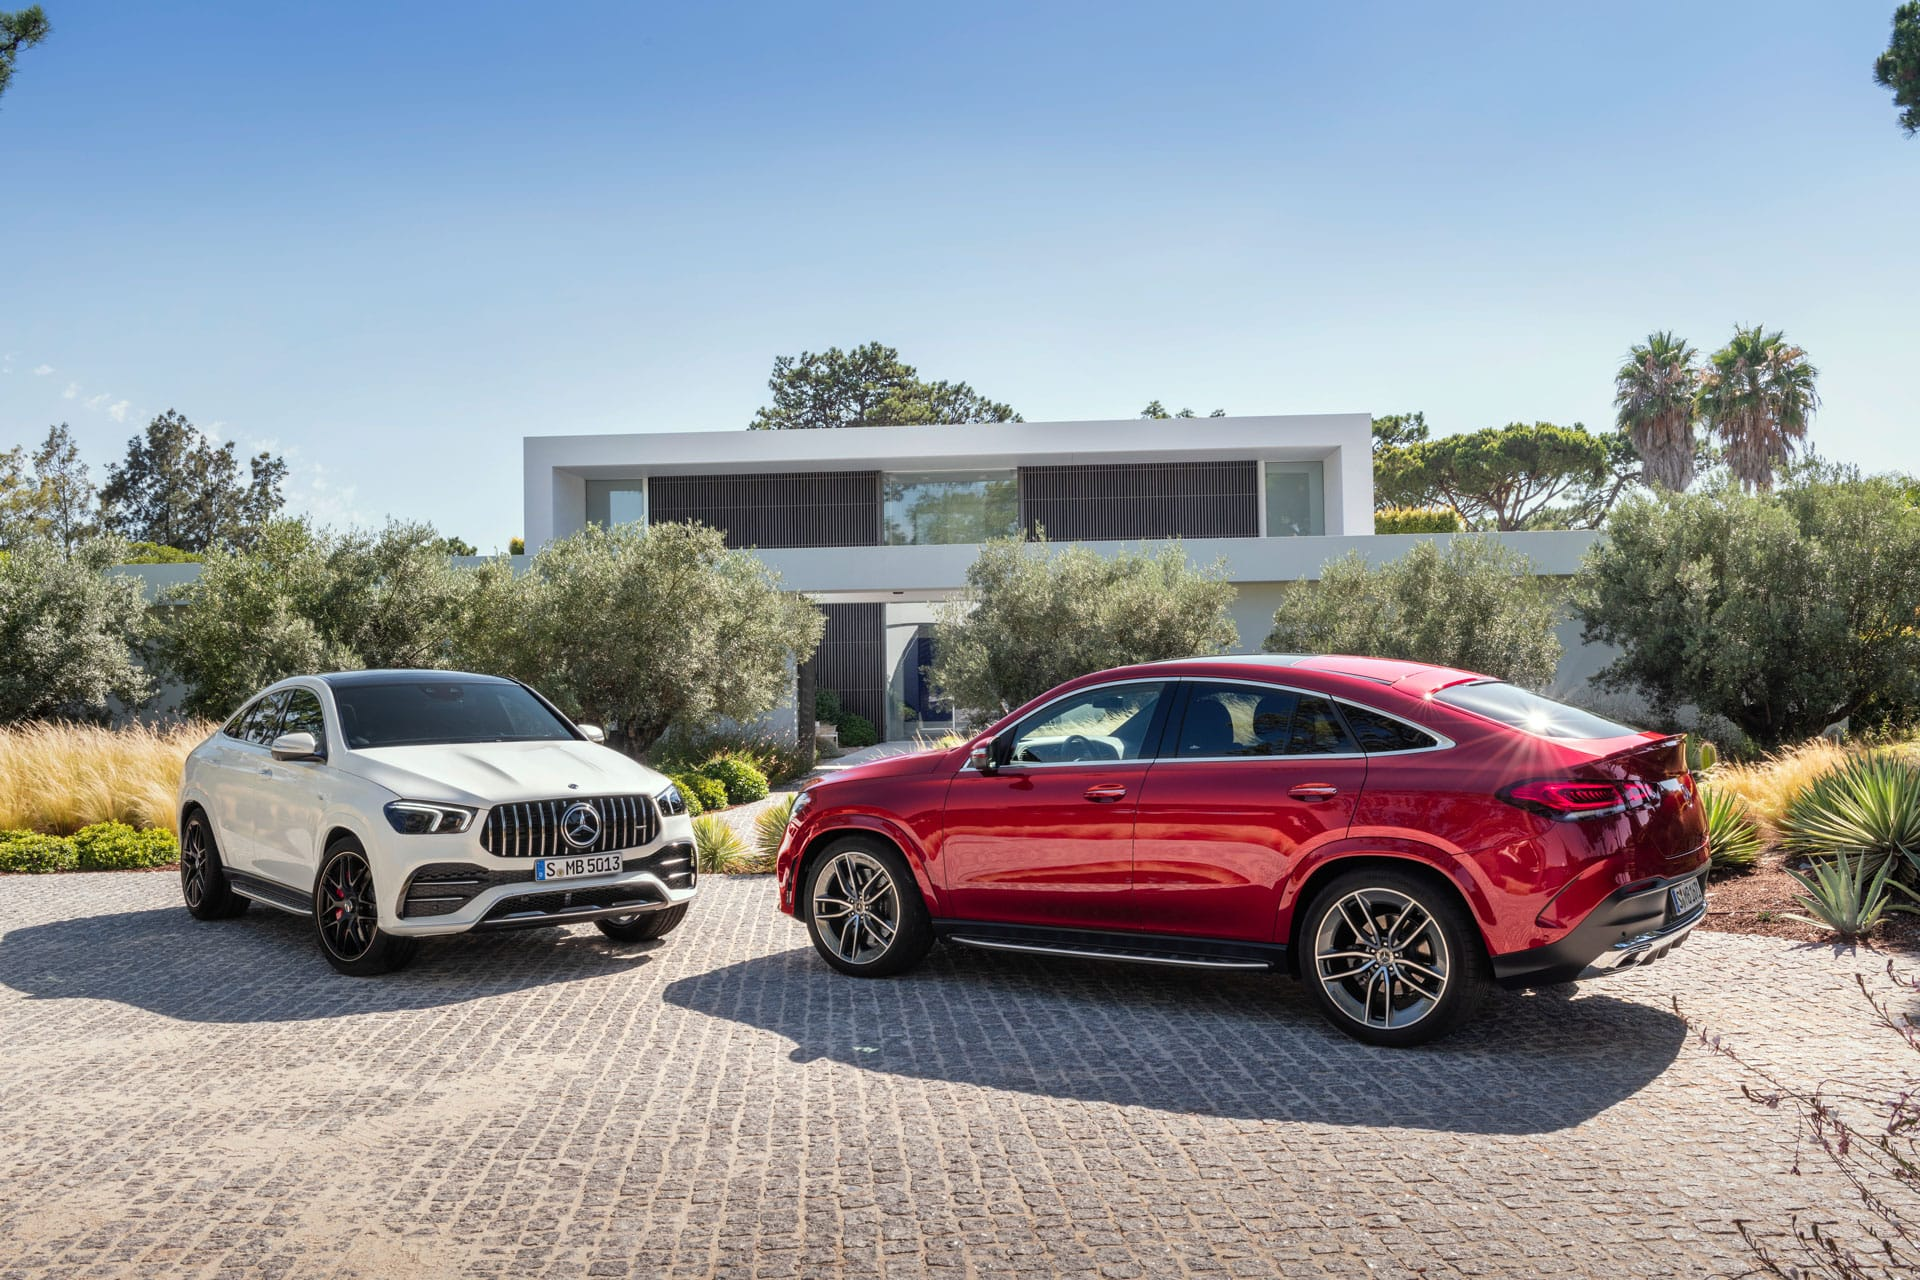 Mercedes-Benz GLE Coupe 2020 и Mercedes-AMG GLE 53 4MATIC